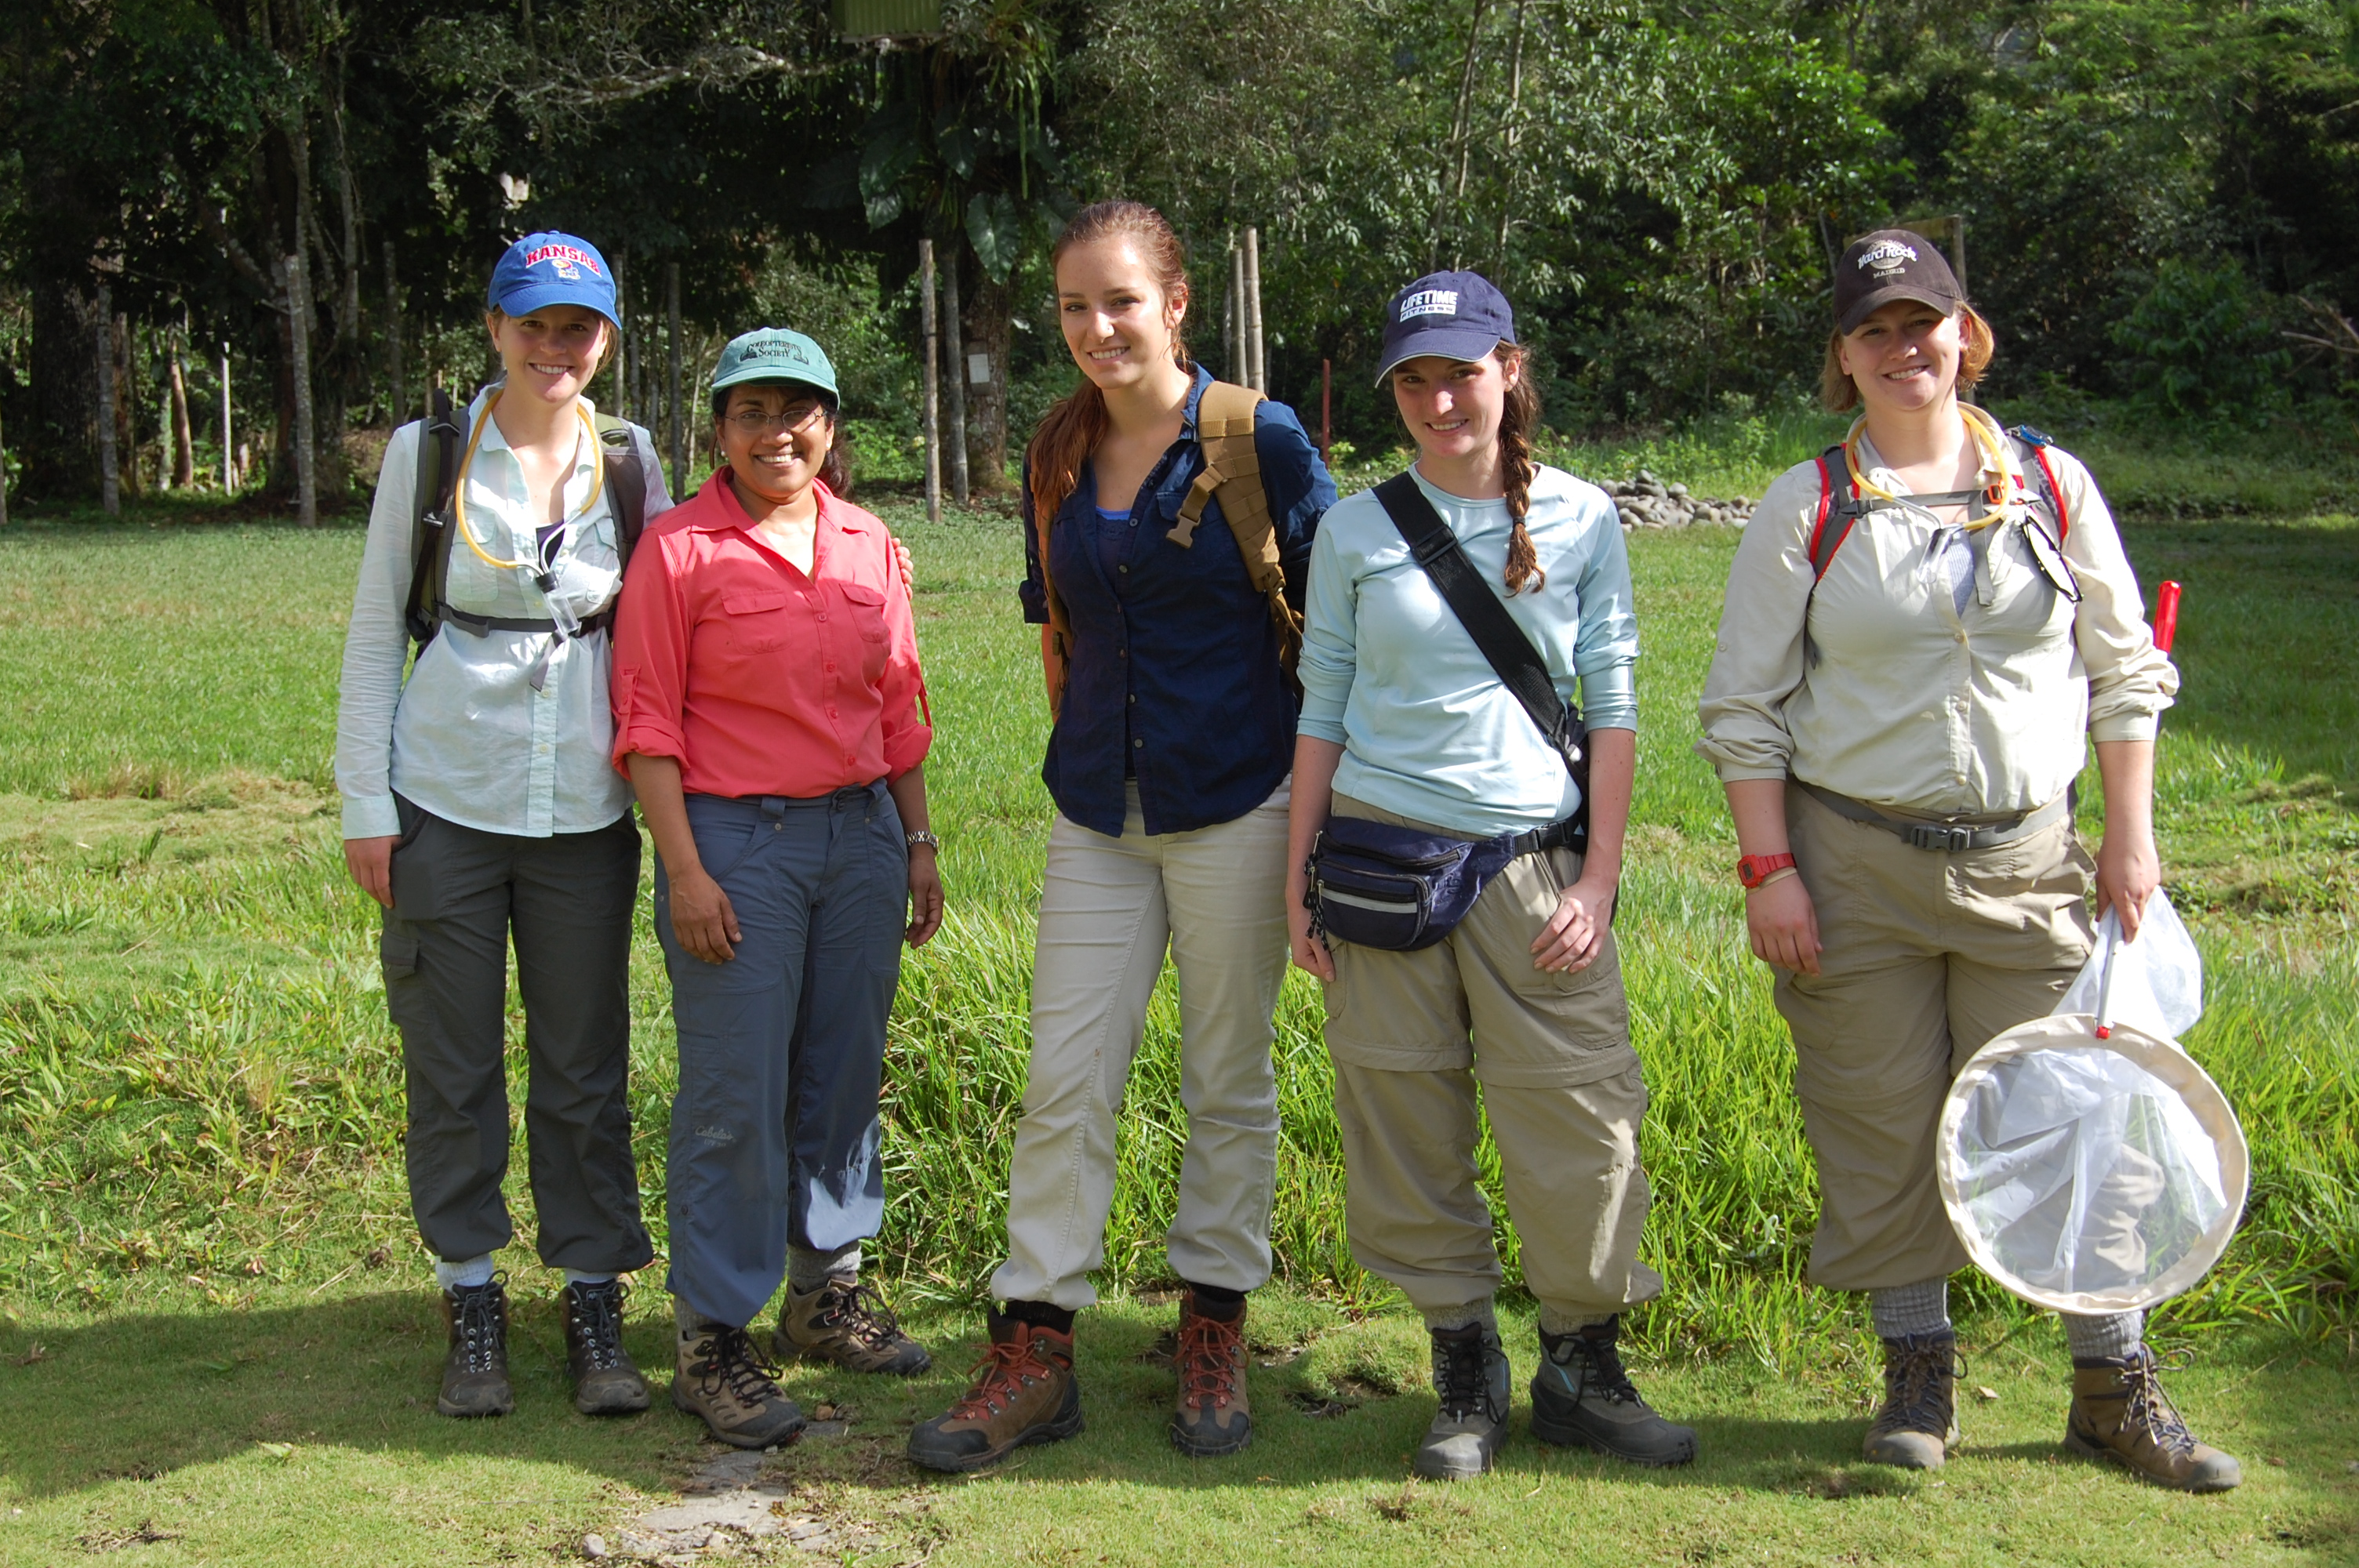 Chaboo with University of Kansas students ready for field work, ACA's Villa Carmen Biological Station. Photo by Caroline Chaboo.